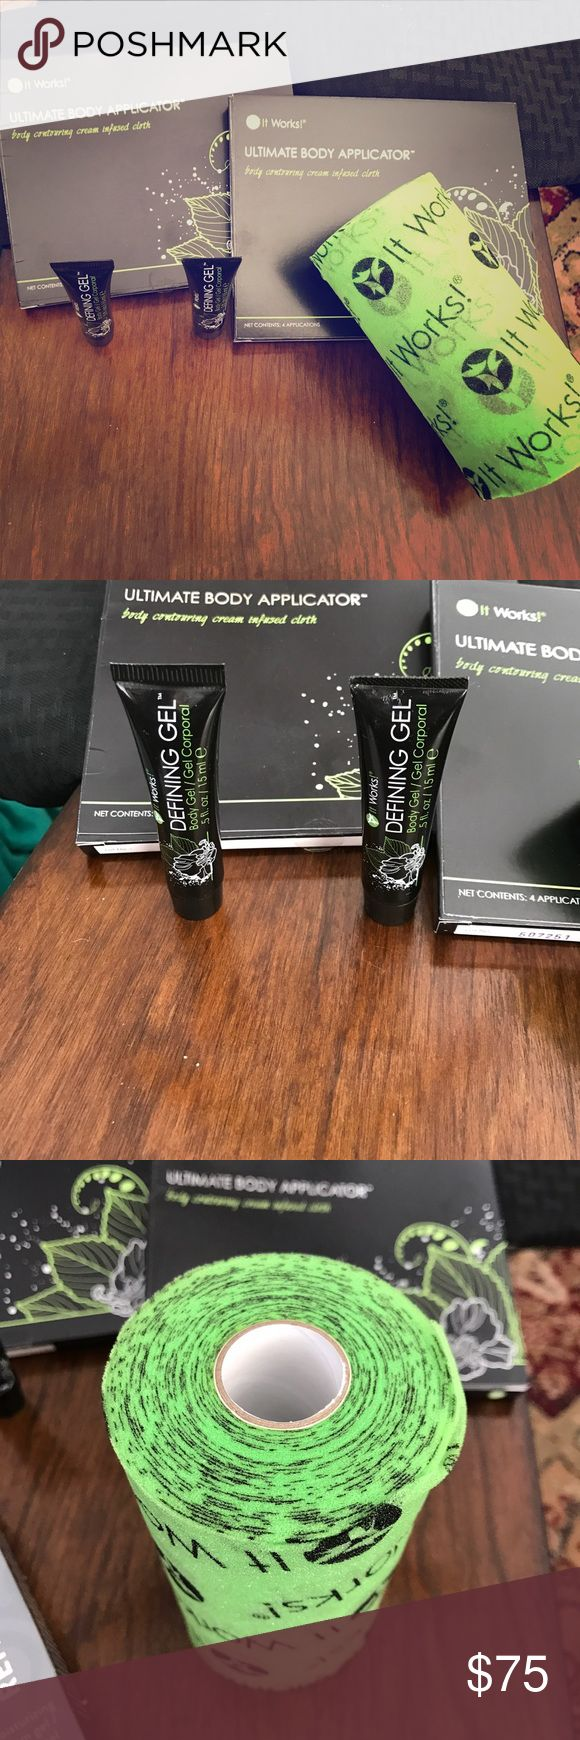 It Works! Ultimate Body Applicator Bundle, NIP It Works! Ultimate Body Applicator Bundle, NIP, 2 small tubes of Defining Gel, 82 ft of Fab Wrap, and 8 total Ultimate Body Applications. I bought these, fully intending to use them, but I got too lazy. My loss, your gain! Make your best offer! It Works! Other